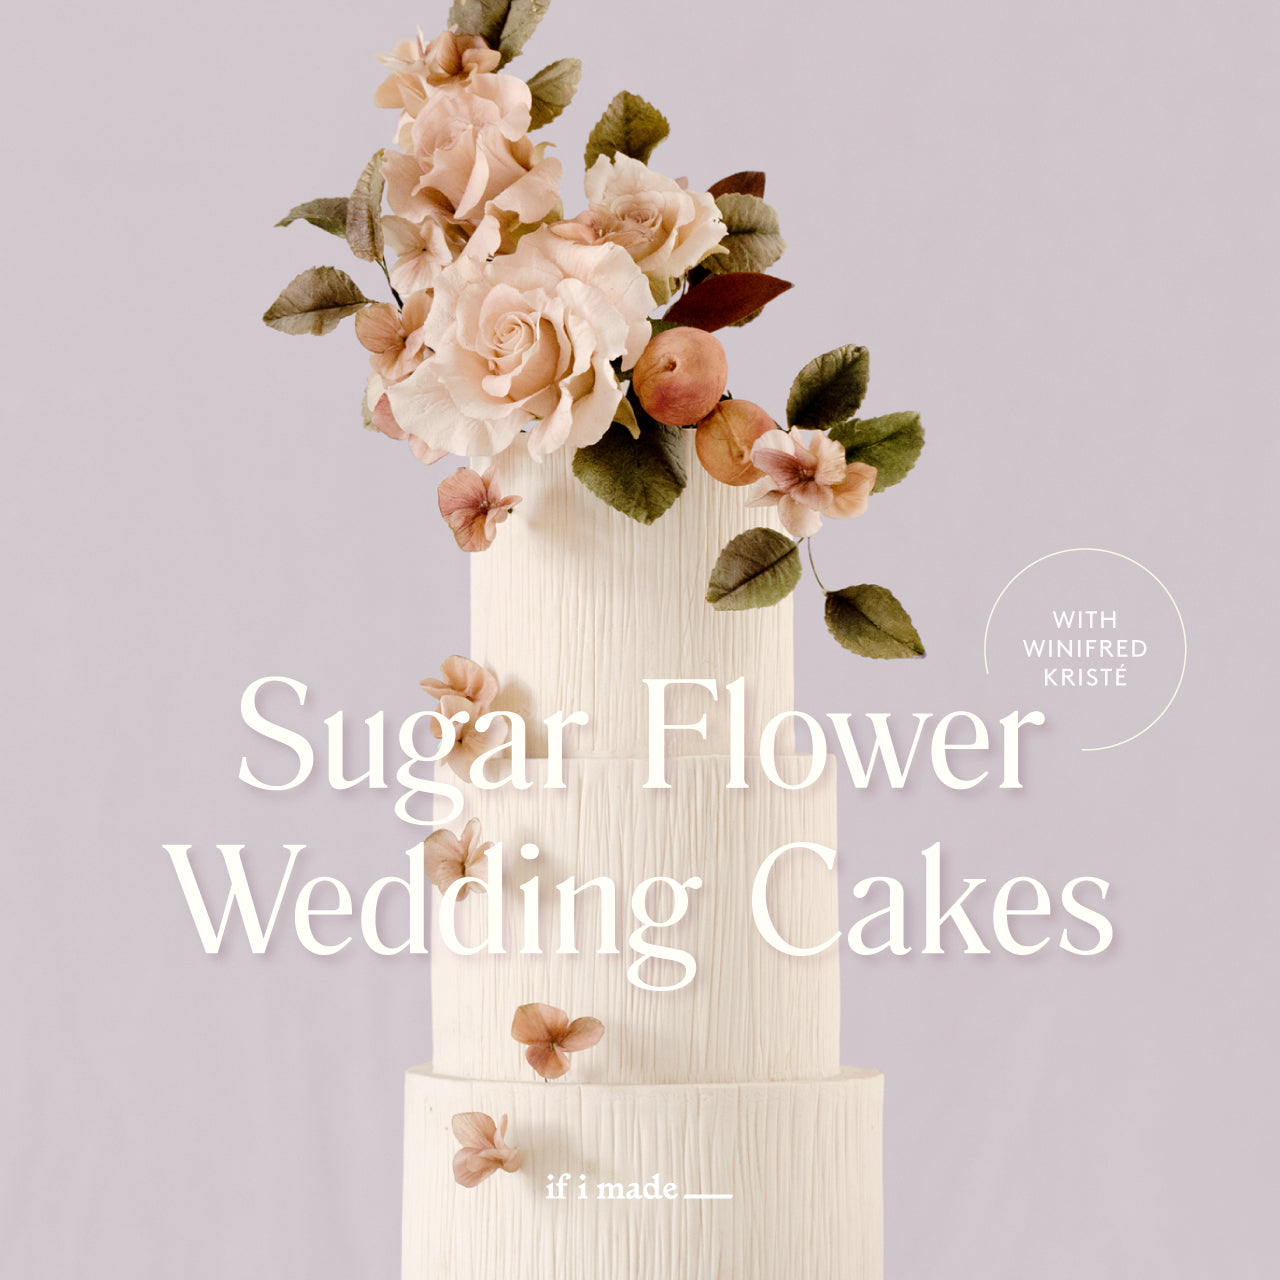 Sale Payment Plan: Sugar Flower Wedding Cakes with Winifred Kriste - 13 Payments of $99